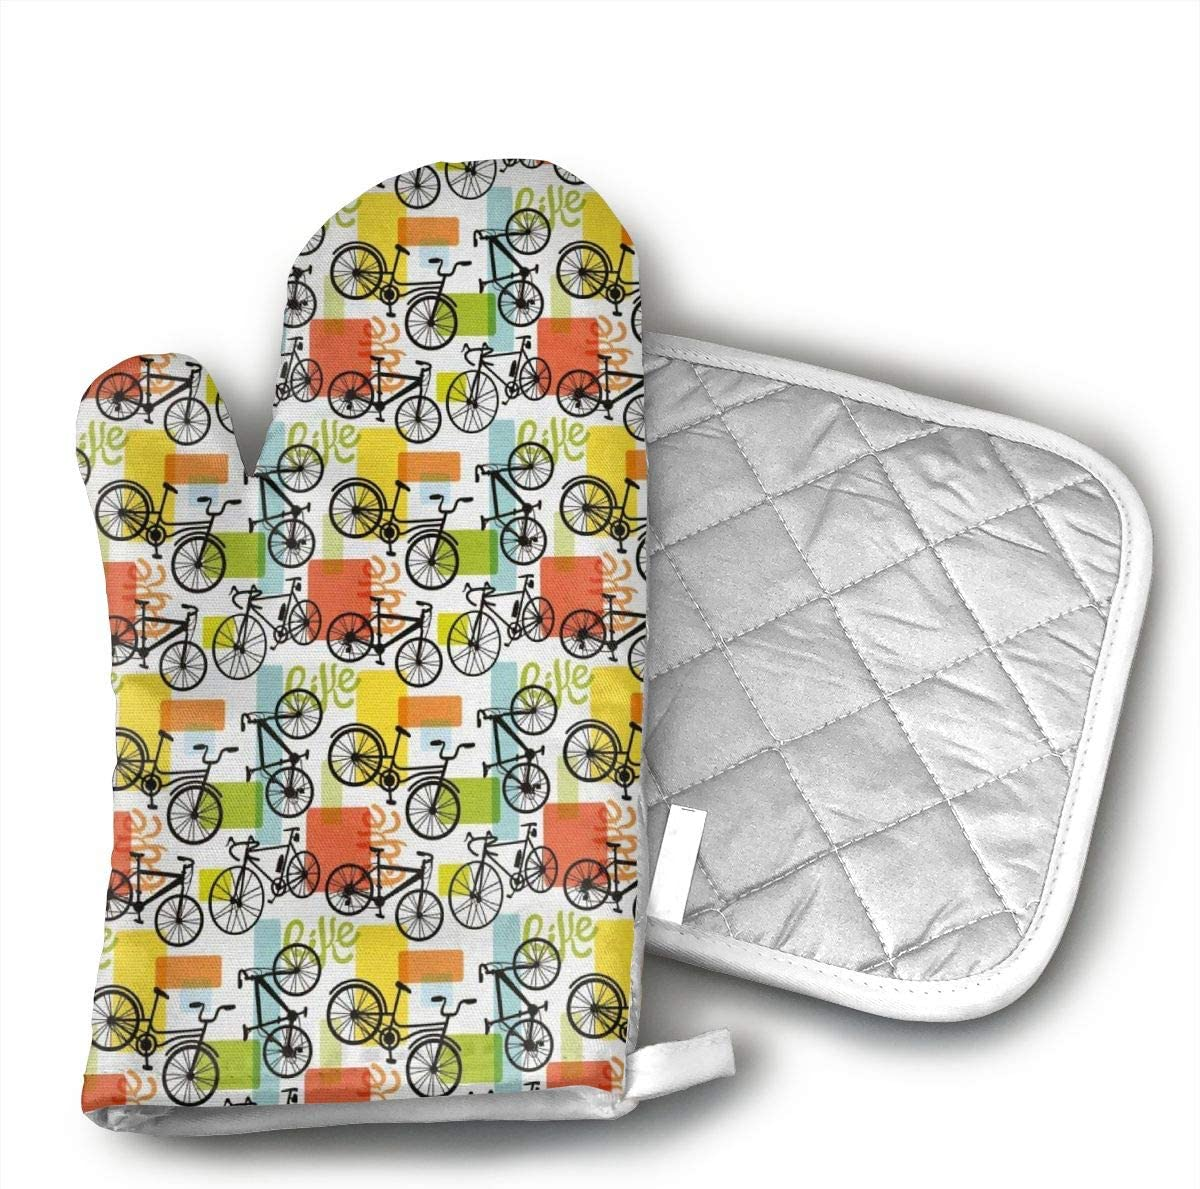 EROJfj Bicycle Sketch Vintage Style Oven Mitts and Potholders BBQ Gloves-Oven Mitts and Pot Holders Non-Slip Cooking Gloves for Cooking Baking Grilling